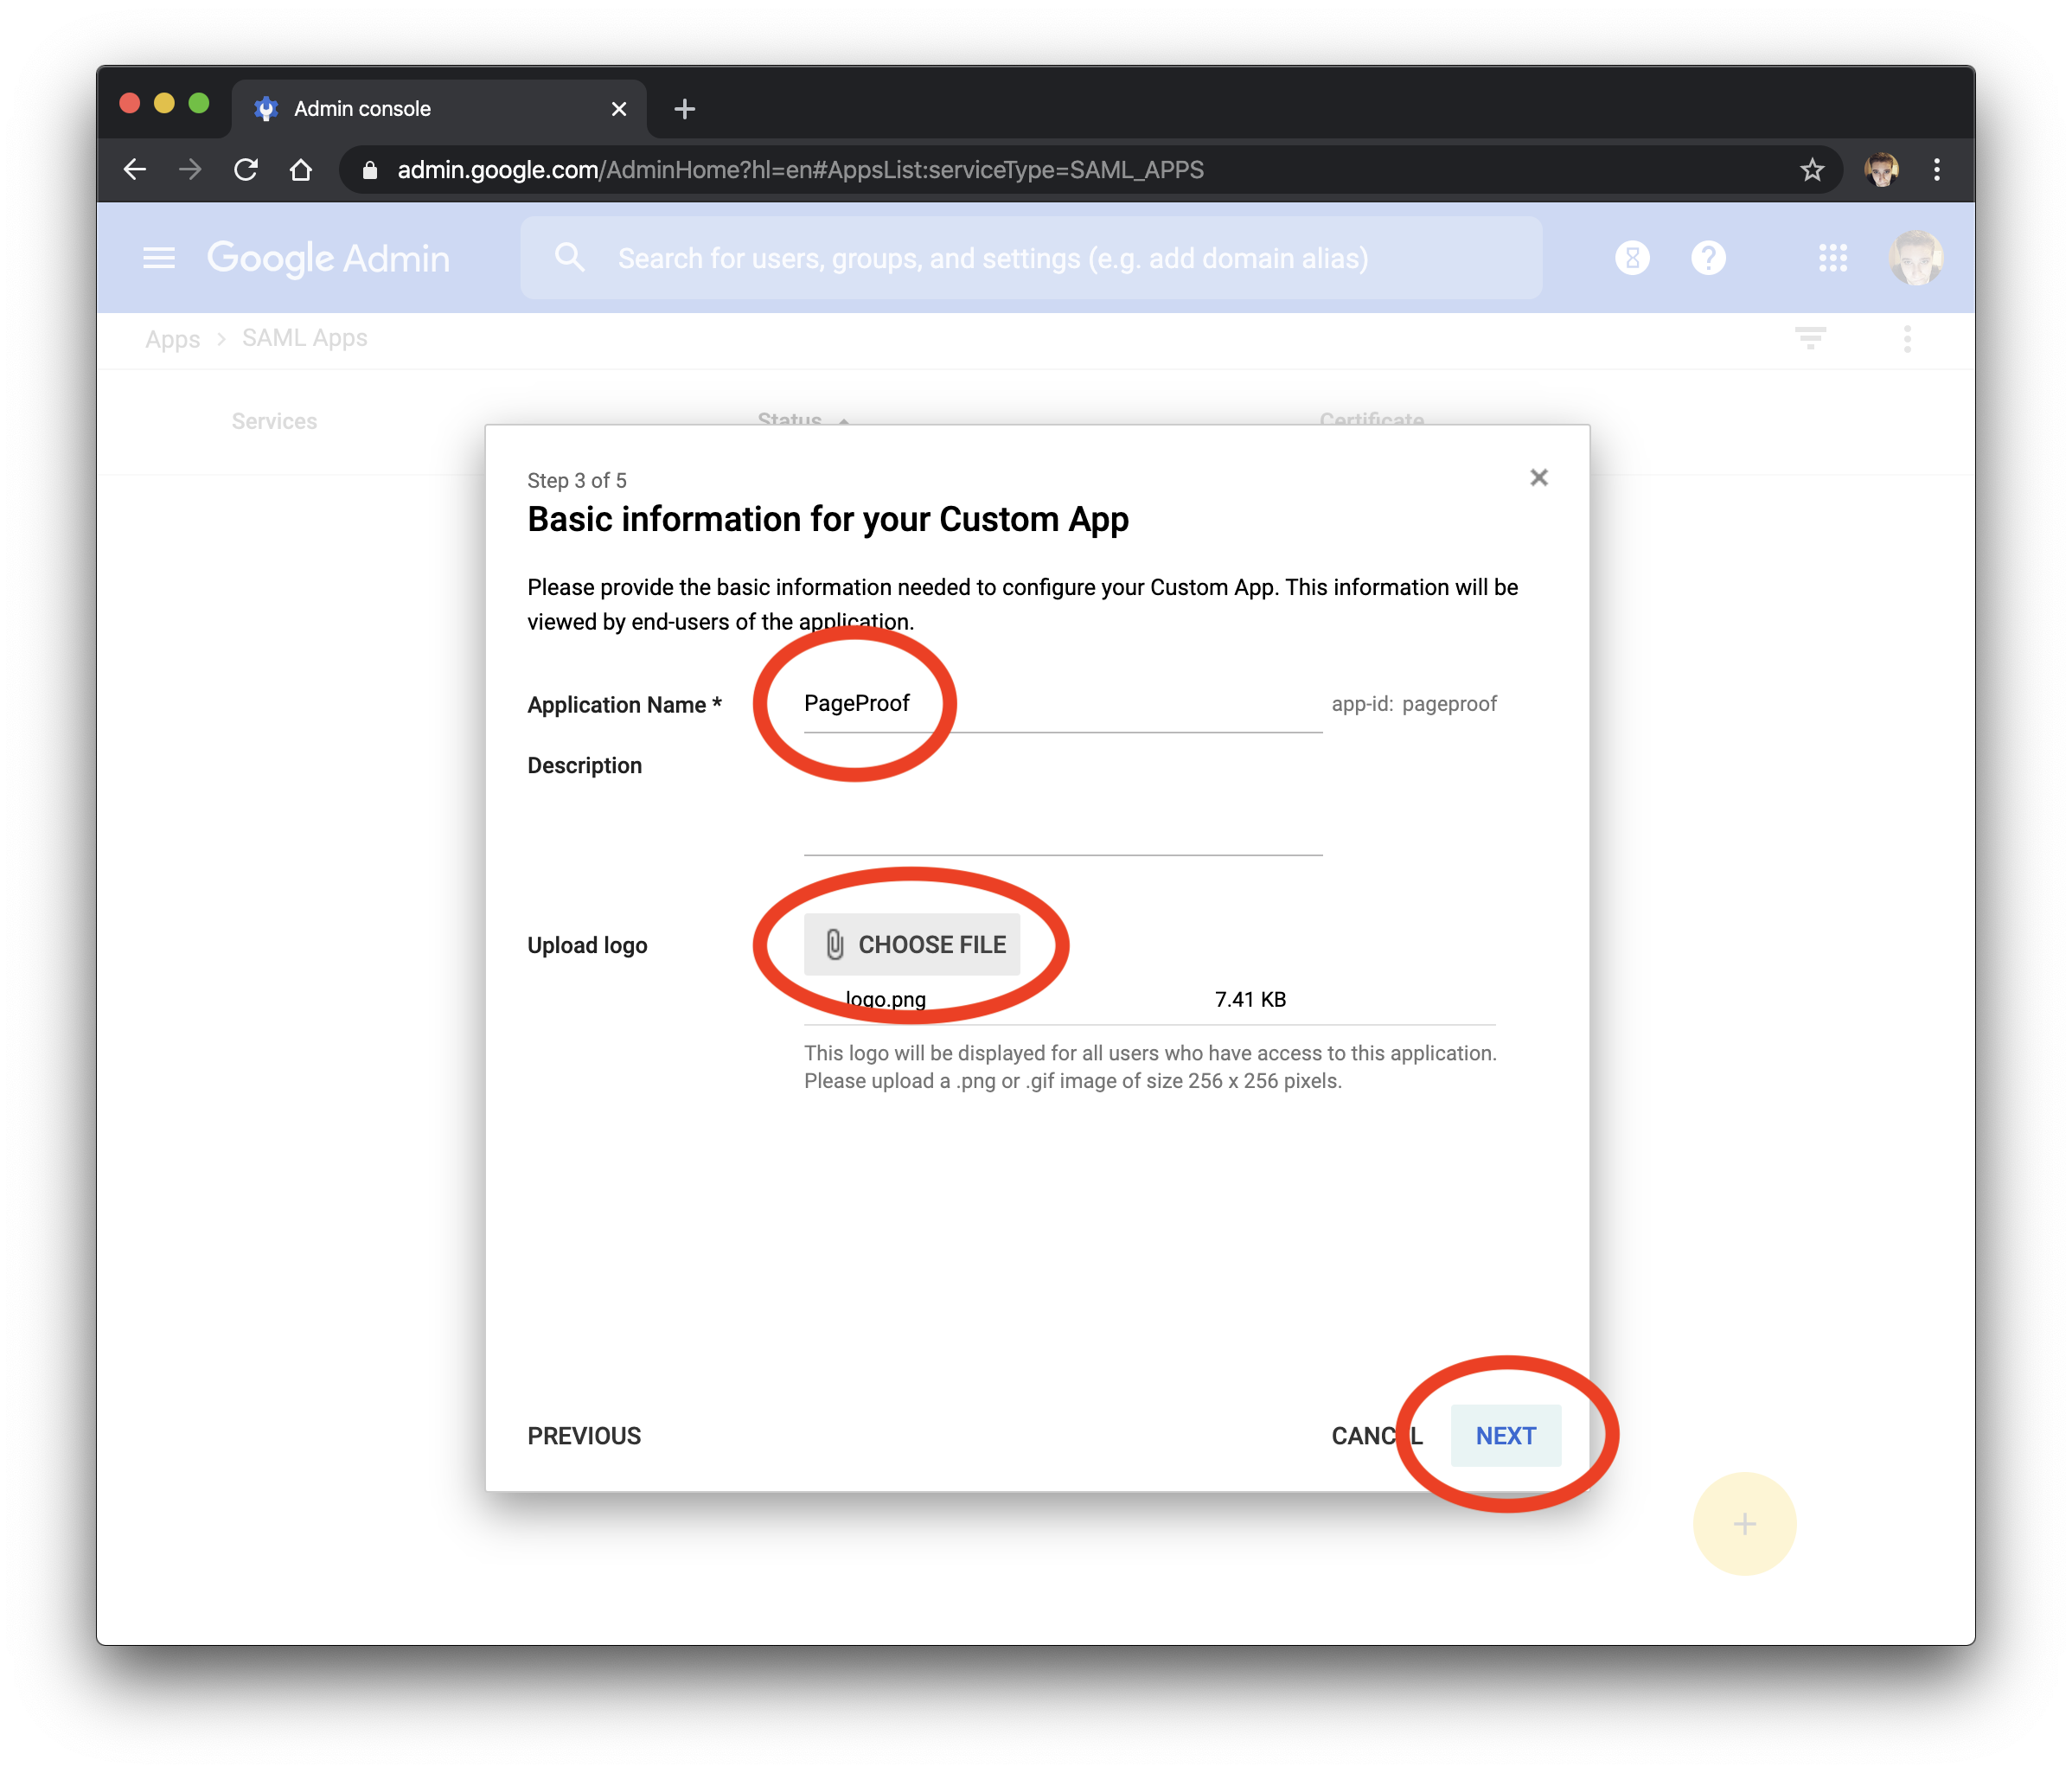 Add an application name and logo in G Suite